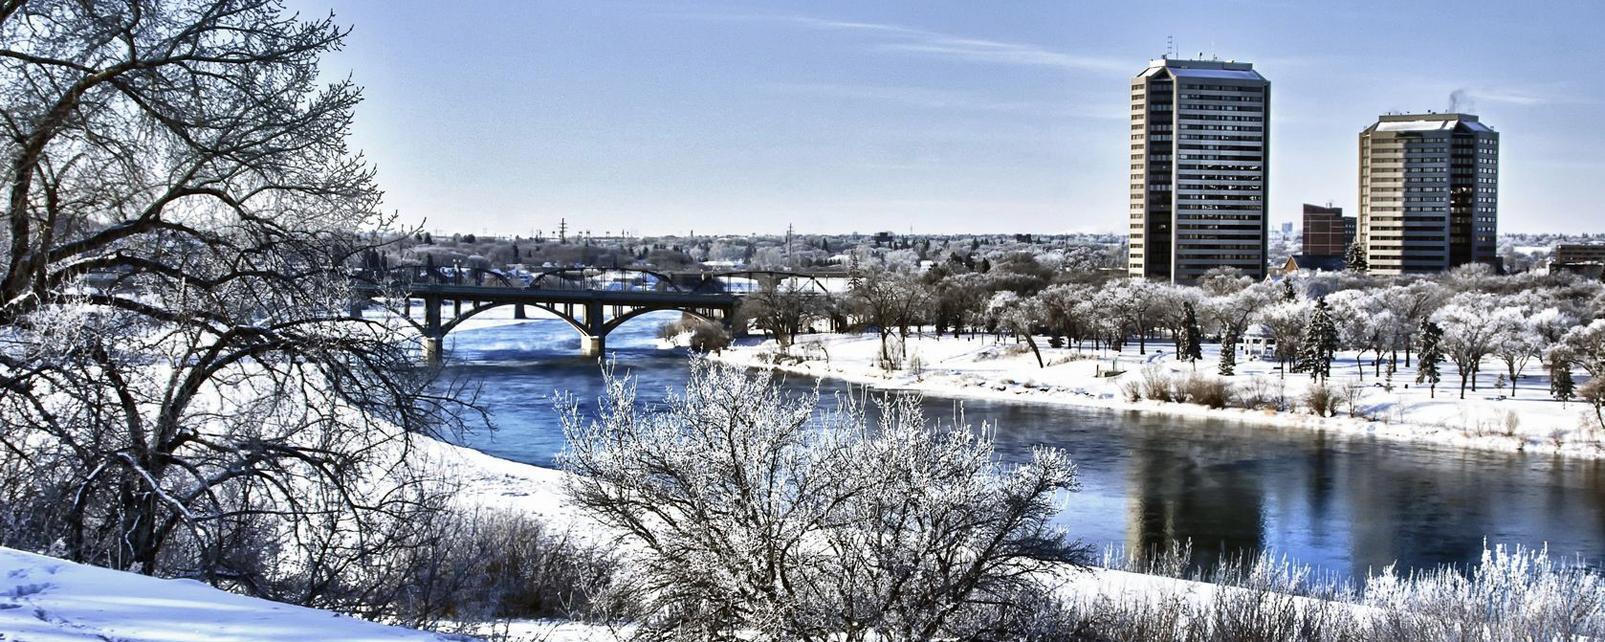 Saskatoon widescreen wallpapers